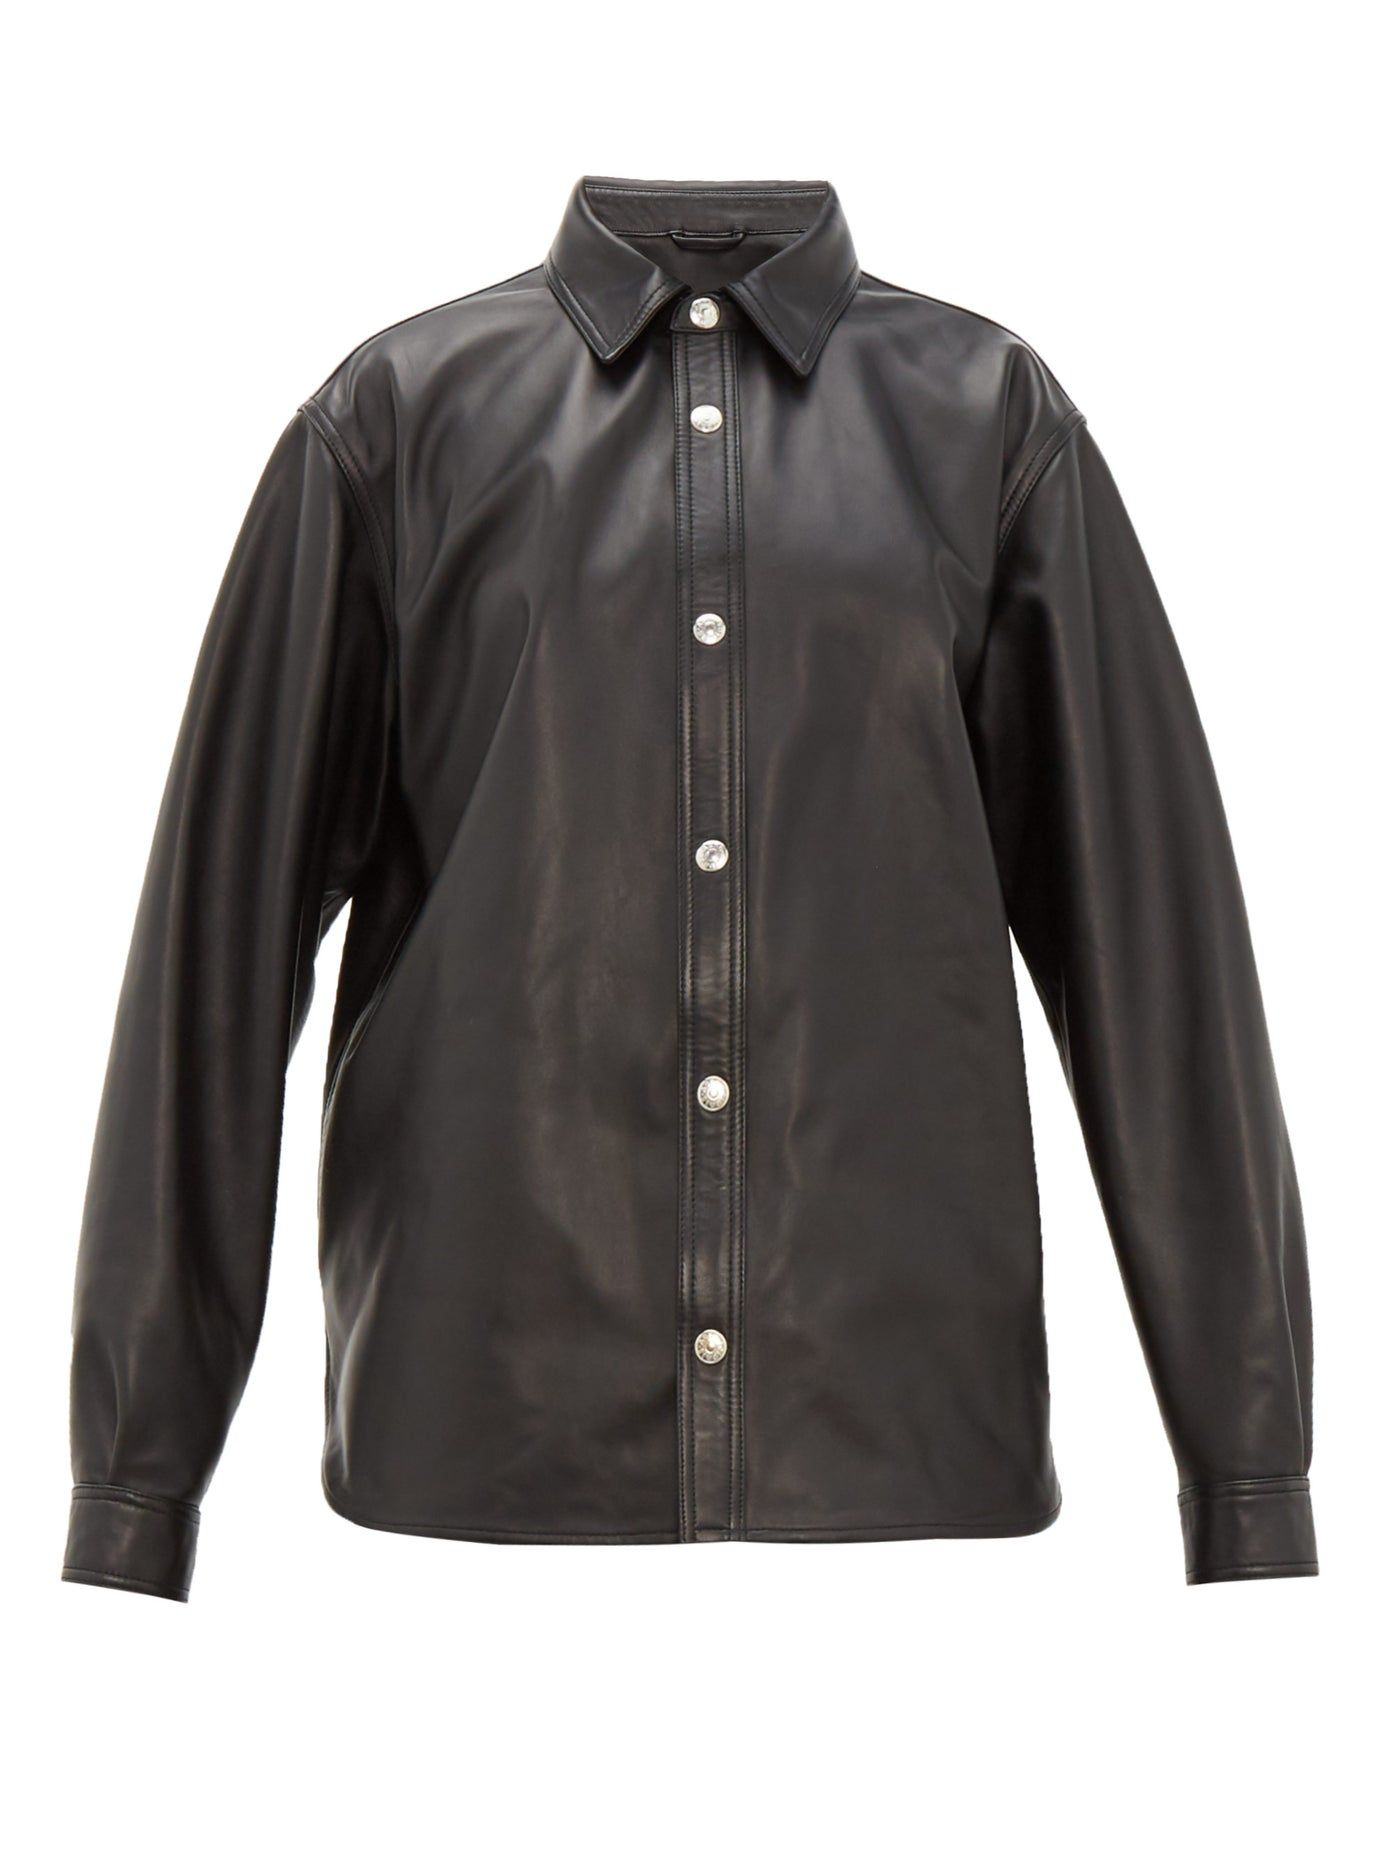 acne-studios-tracey-leather-jacket